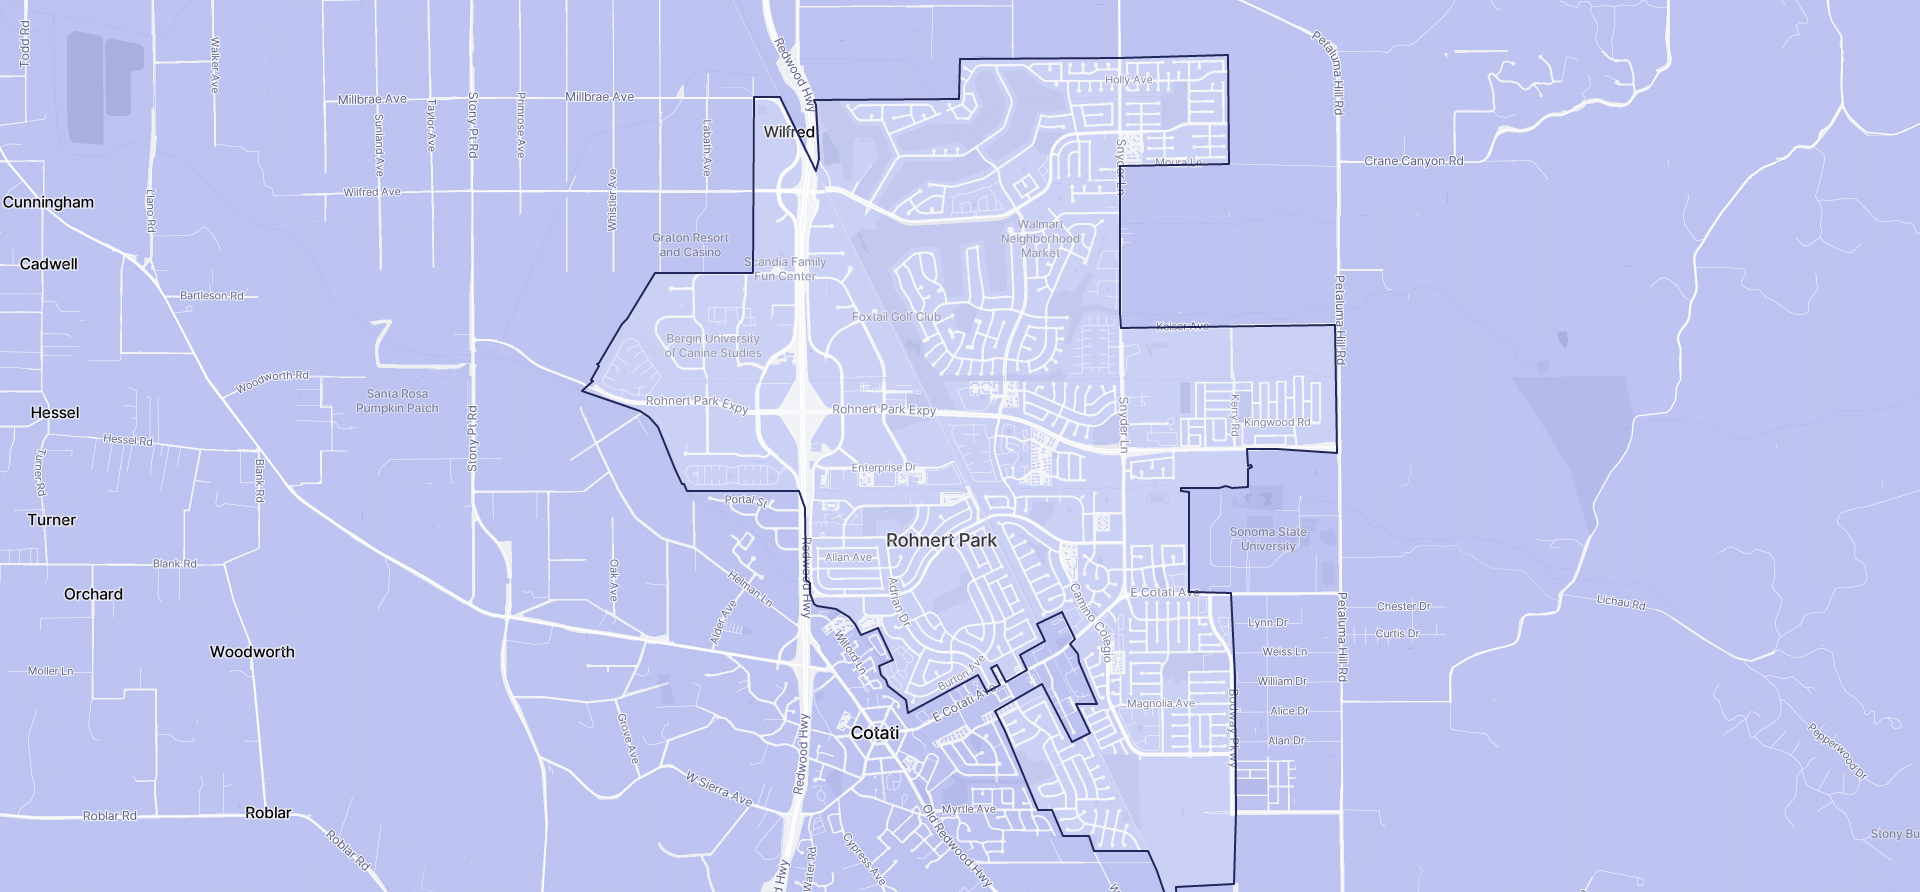 Image of Rohnert Park boundaries on a map.